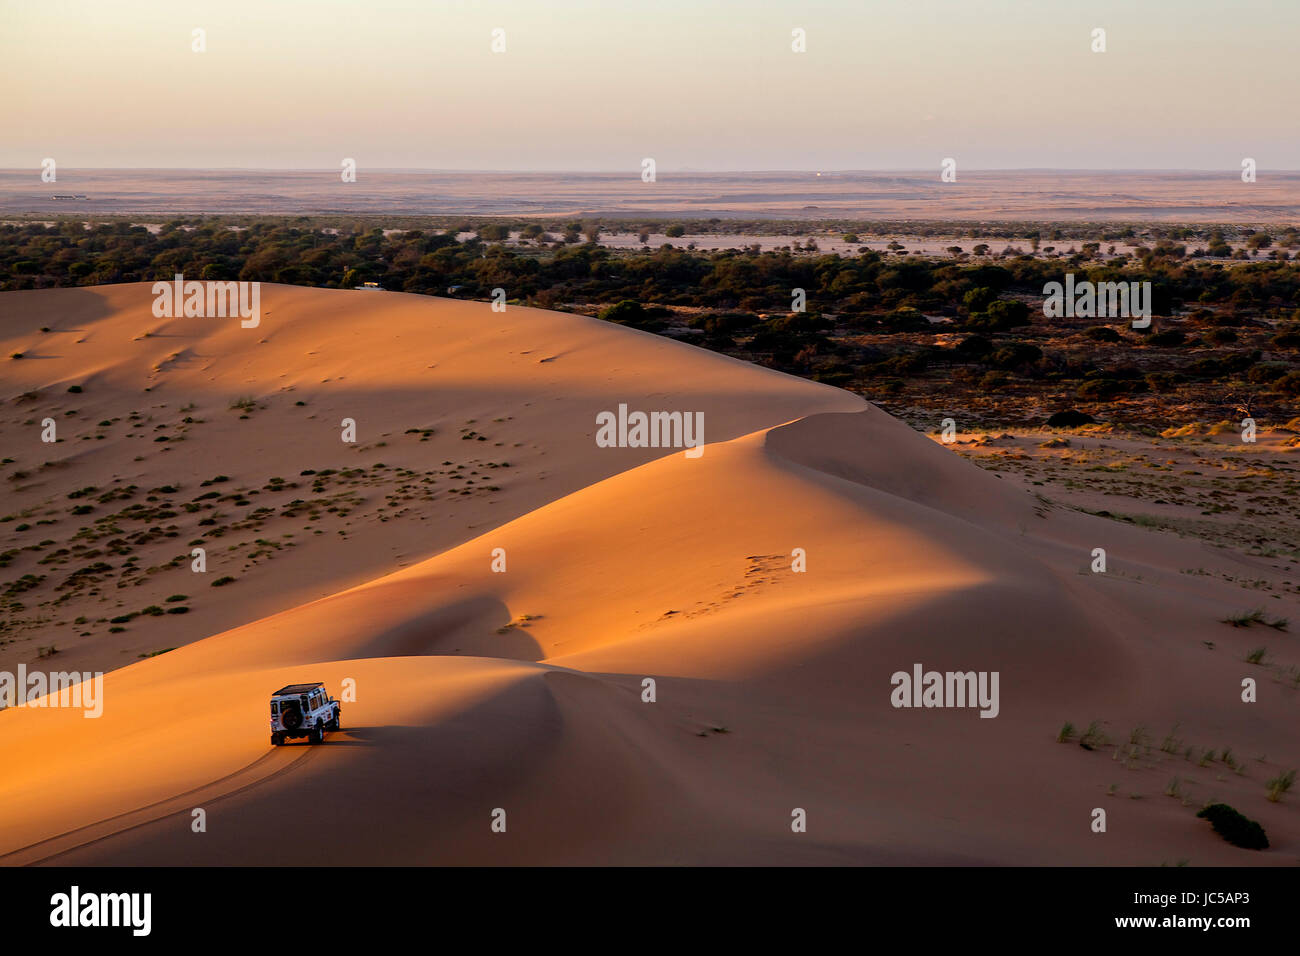 An offroad vehicle drives along a sand dune in the light of the setting sun - Stock Image